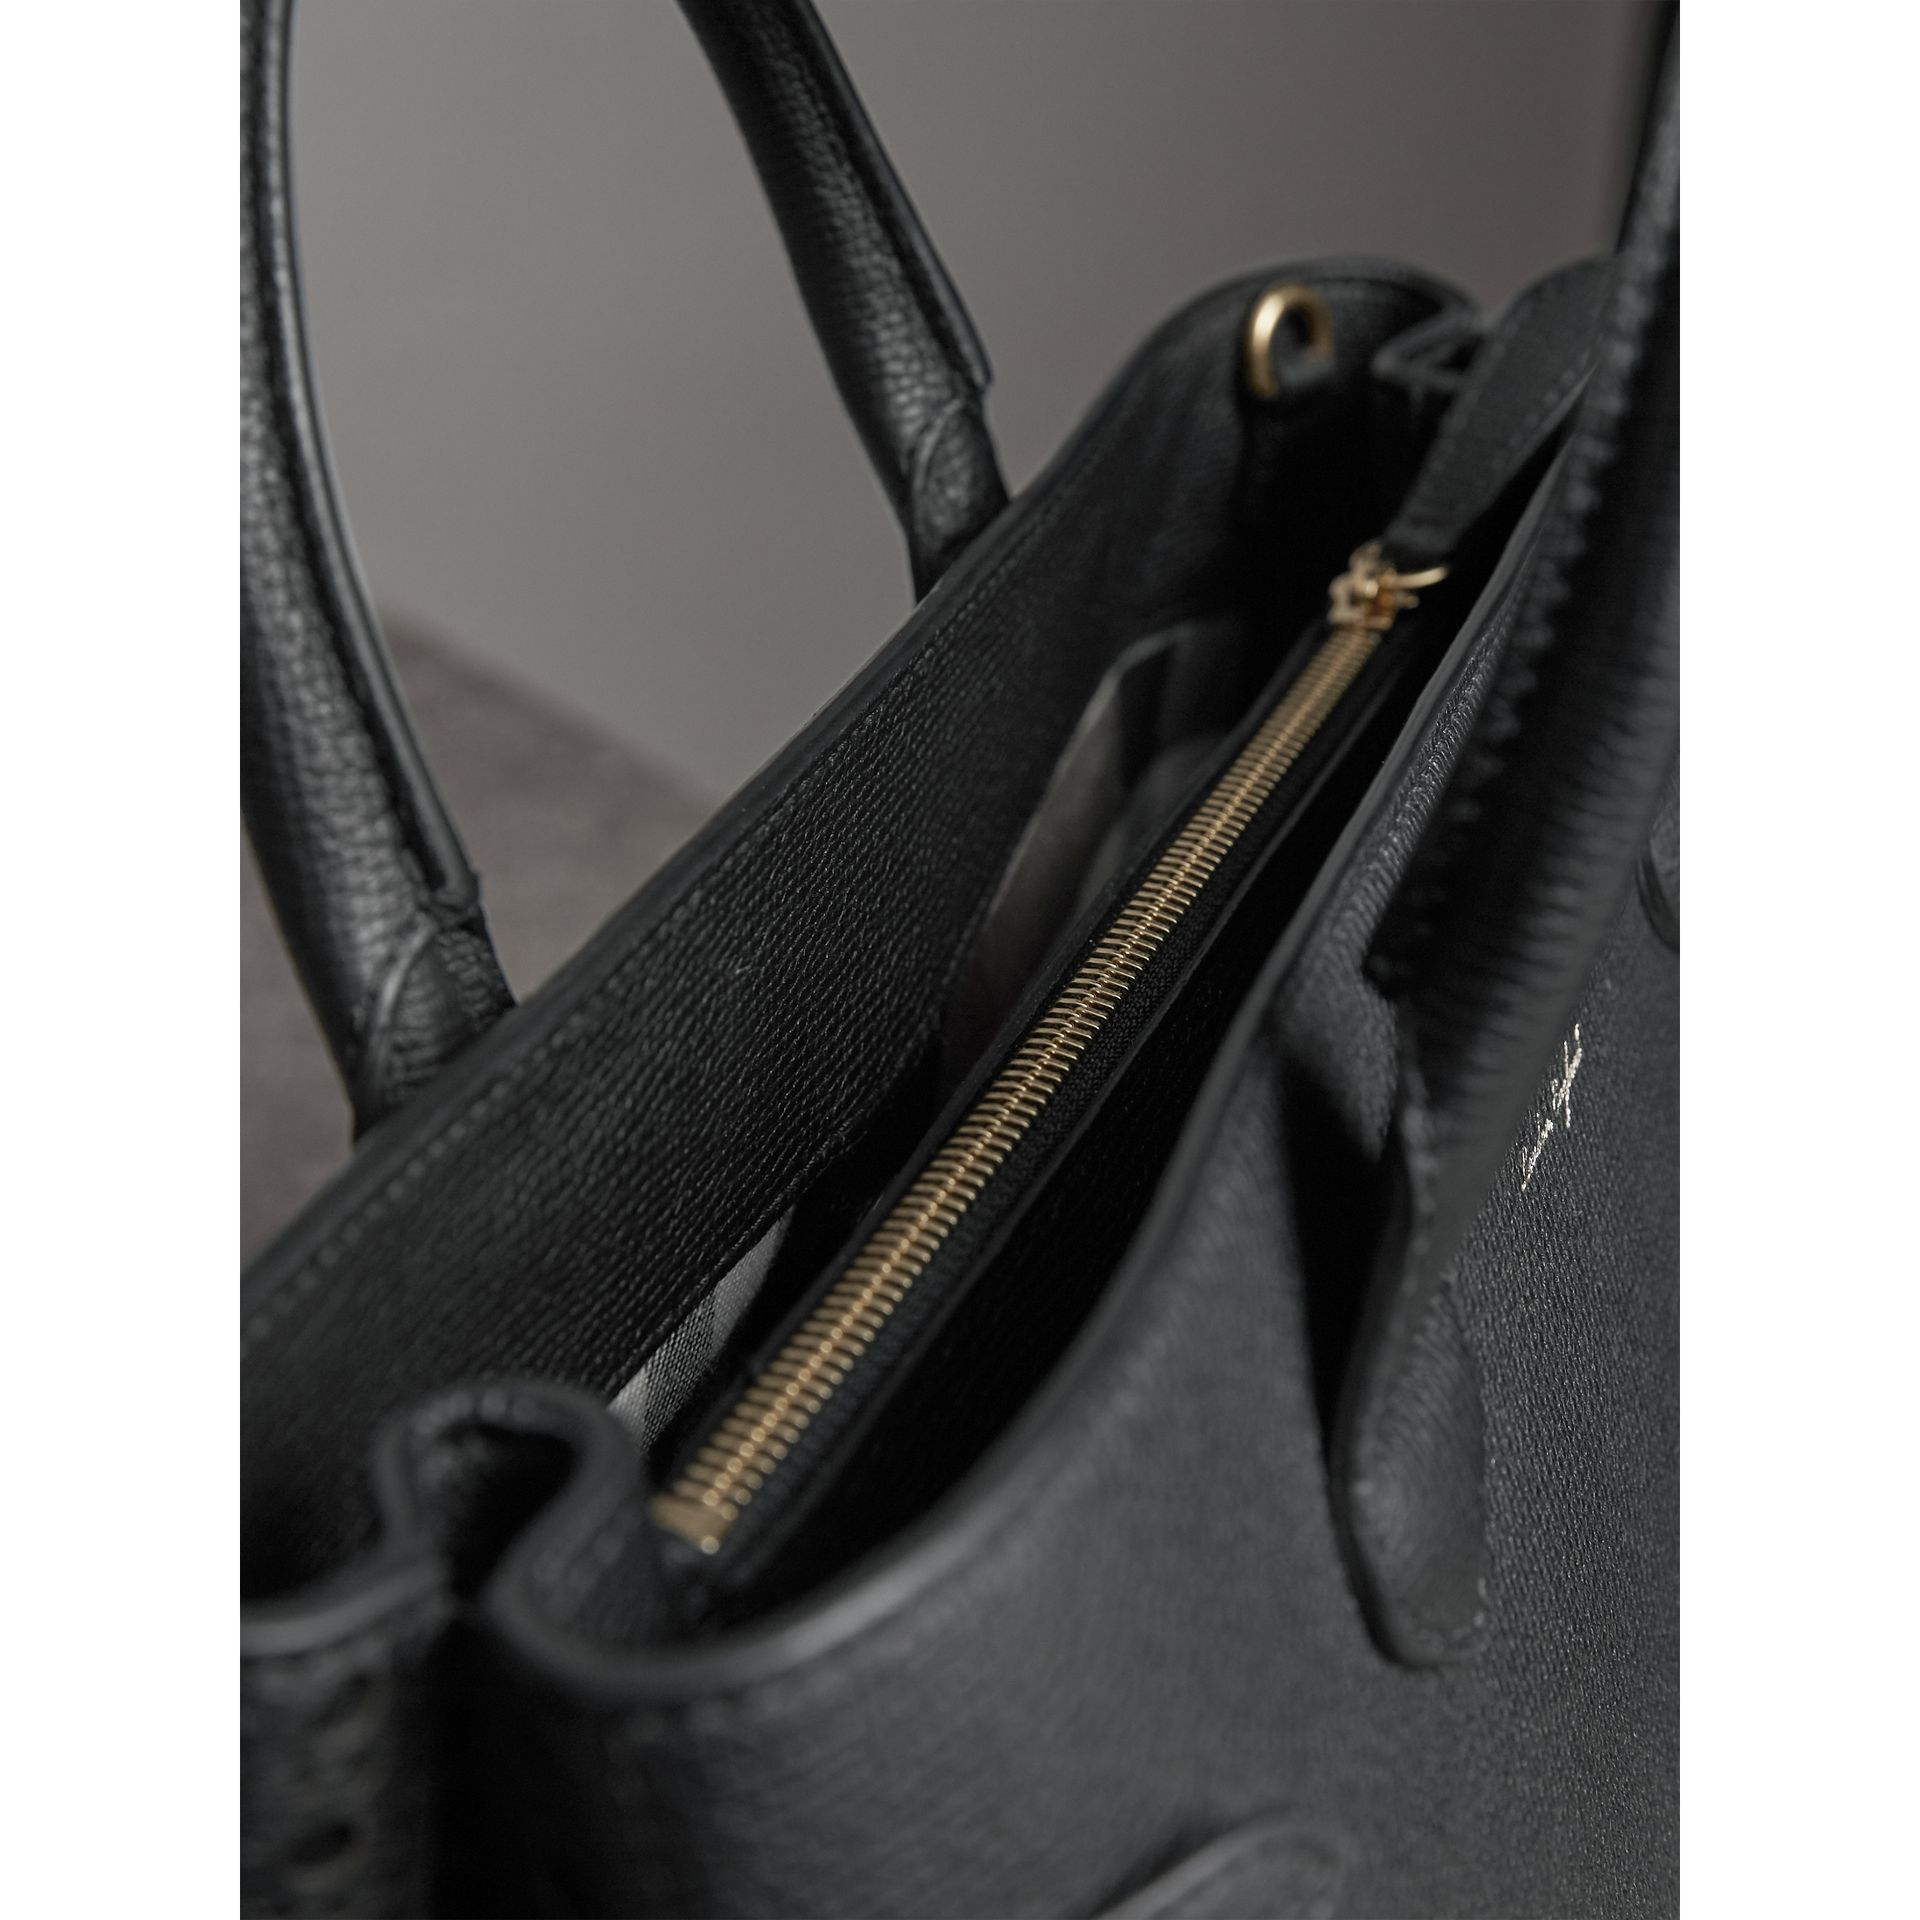 Sac The Banner moyen de style richelieu (Noir) - Femme | Burberry Canada - photo de la galerie 5